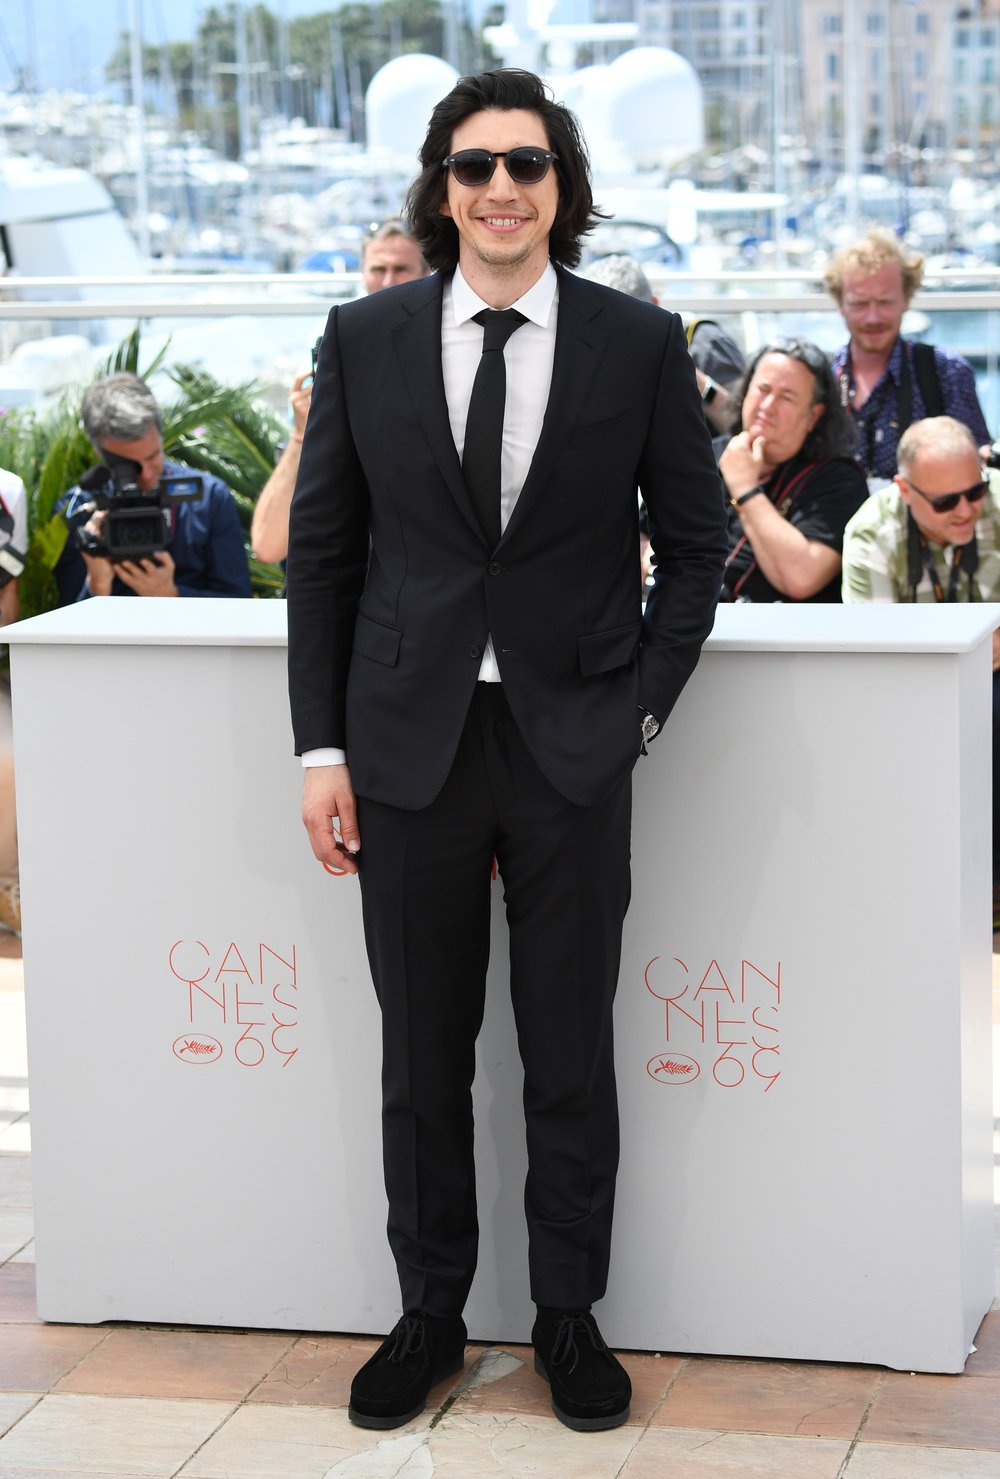 gq-adam-driver-cannes.jpg